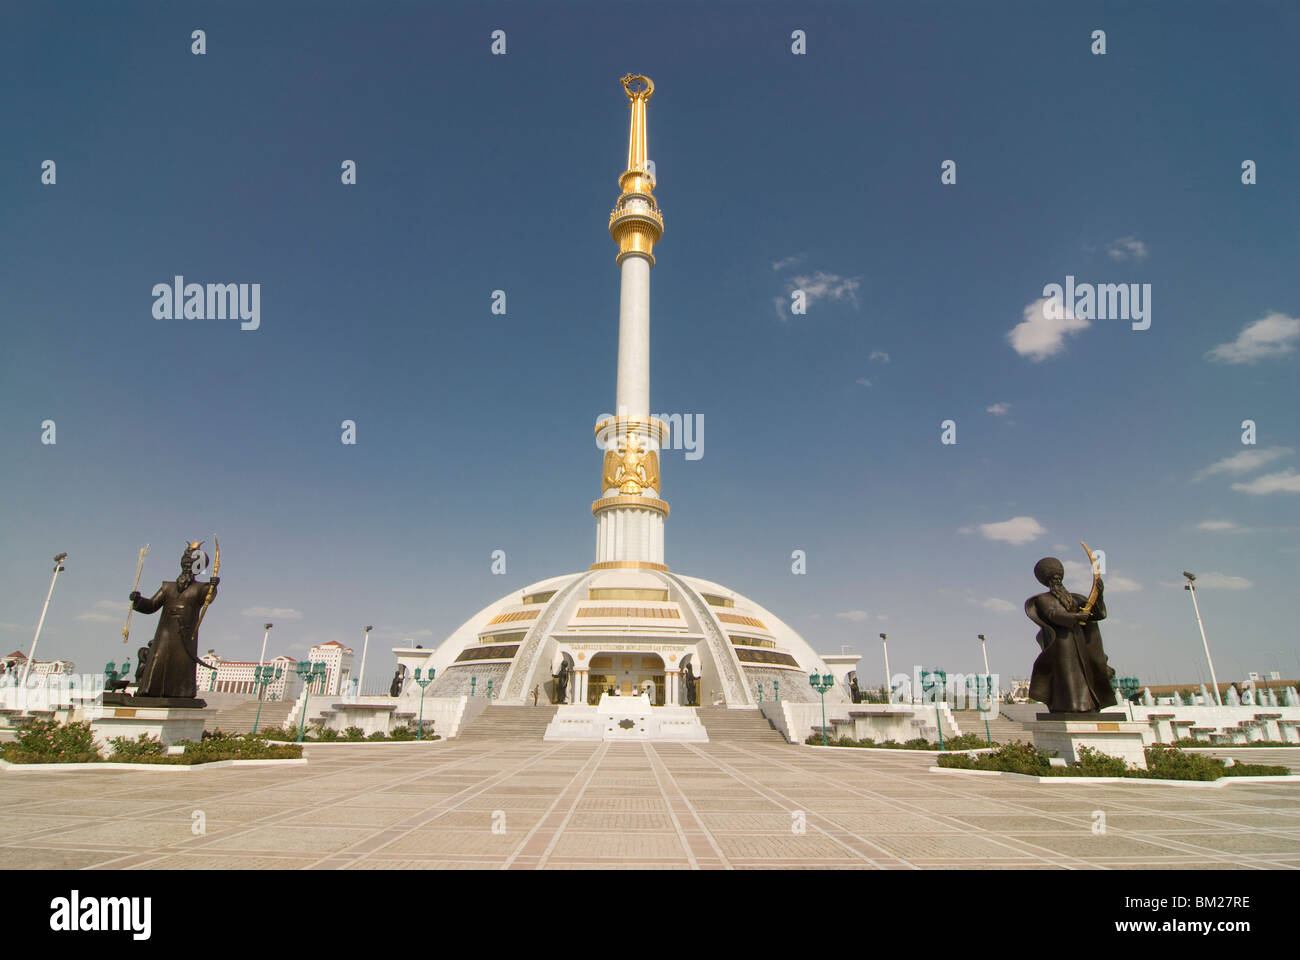 Monument of the Independence of Turkmenistan, Ashgabad, Turkmenistan, Central Asia, Asia - Stock Image